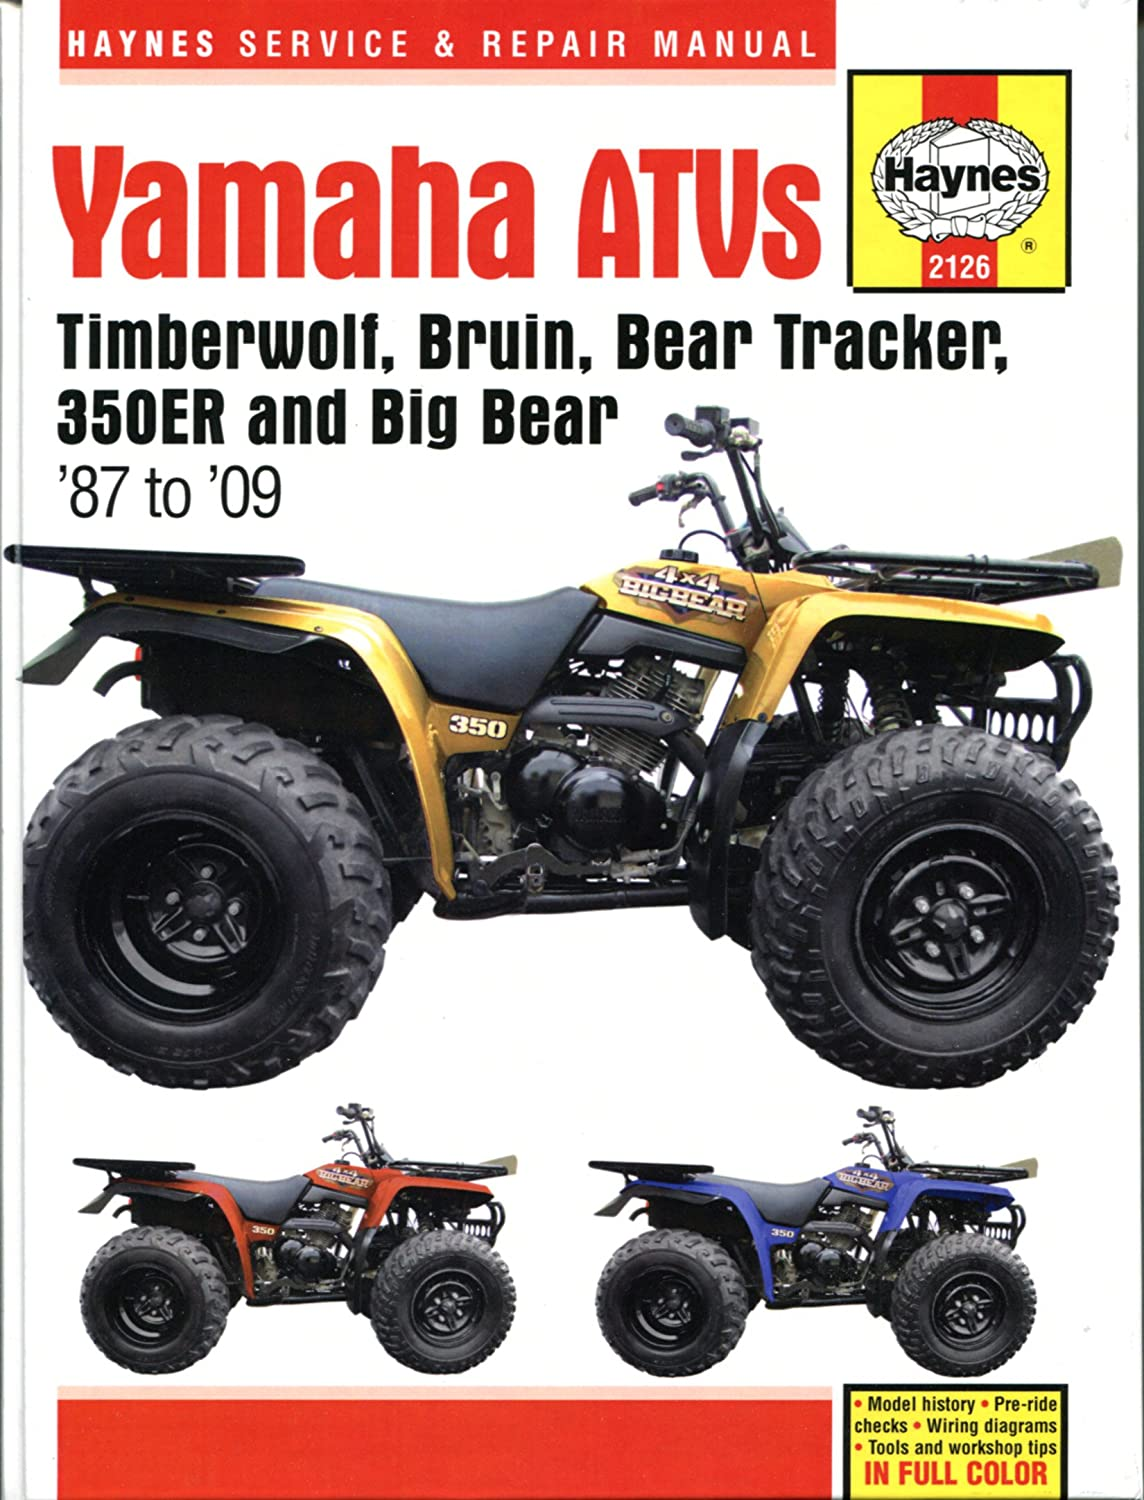 wiring haynes manual 2126 yamaha atv yfm350 & yfm400 (er and big bear)  87 on